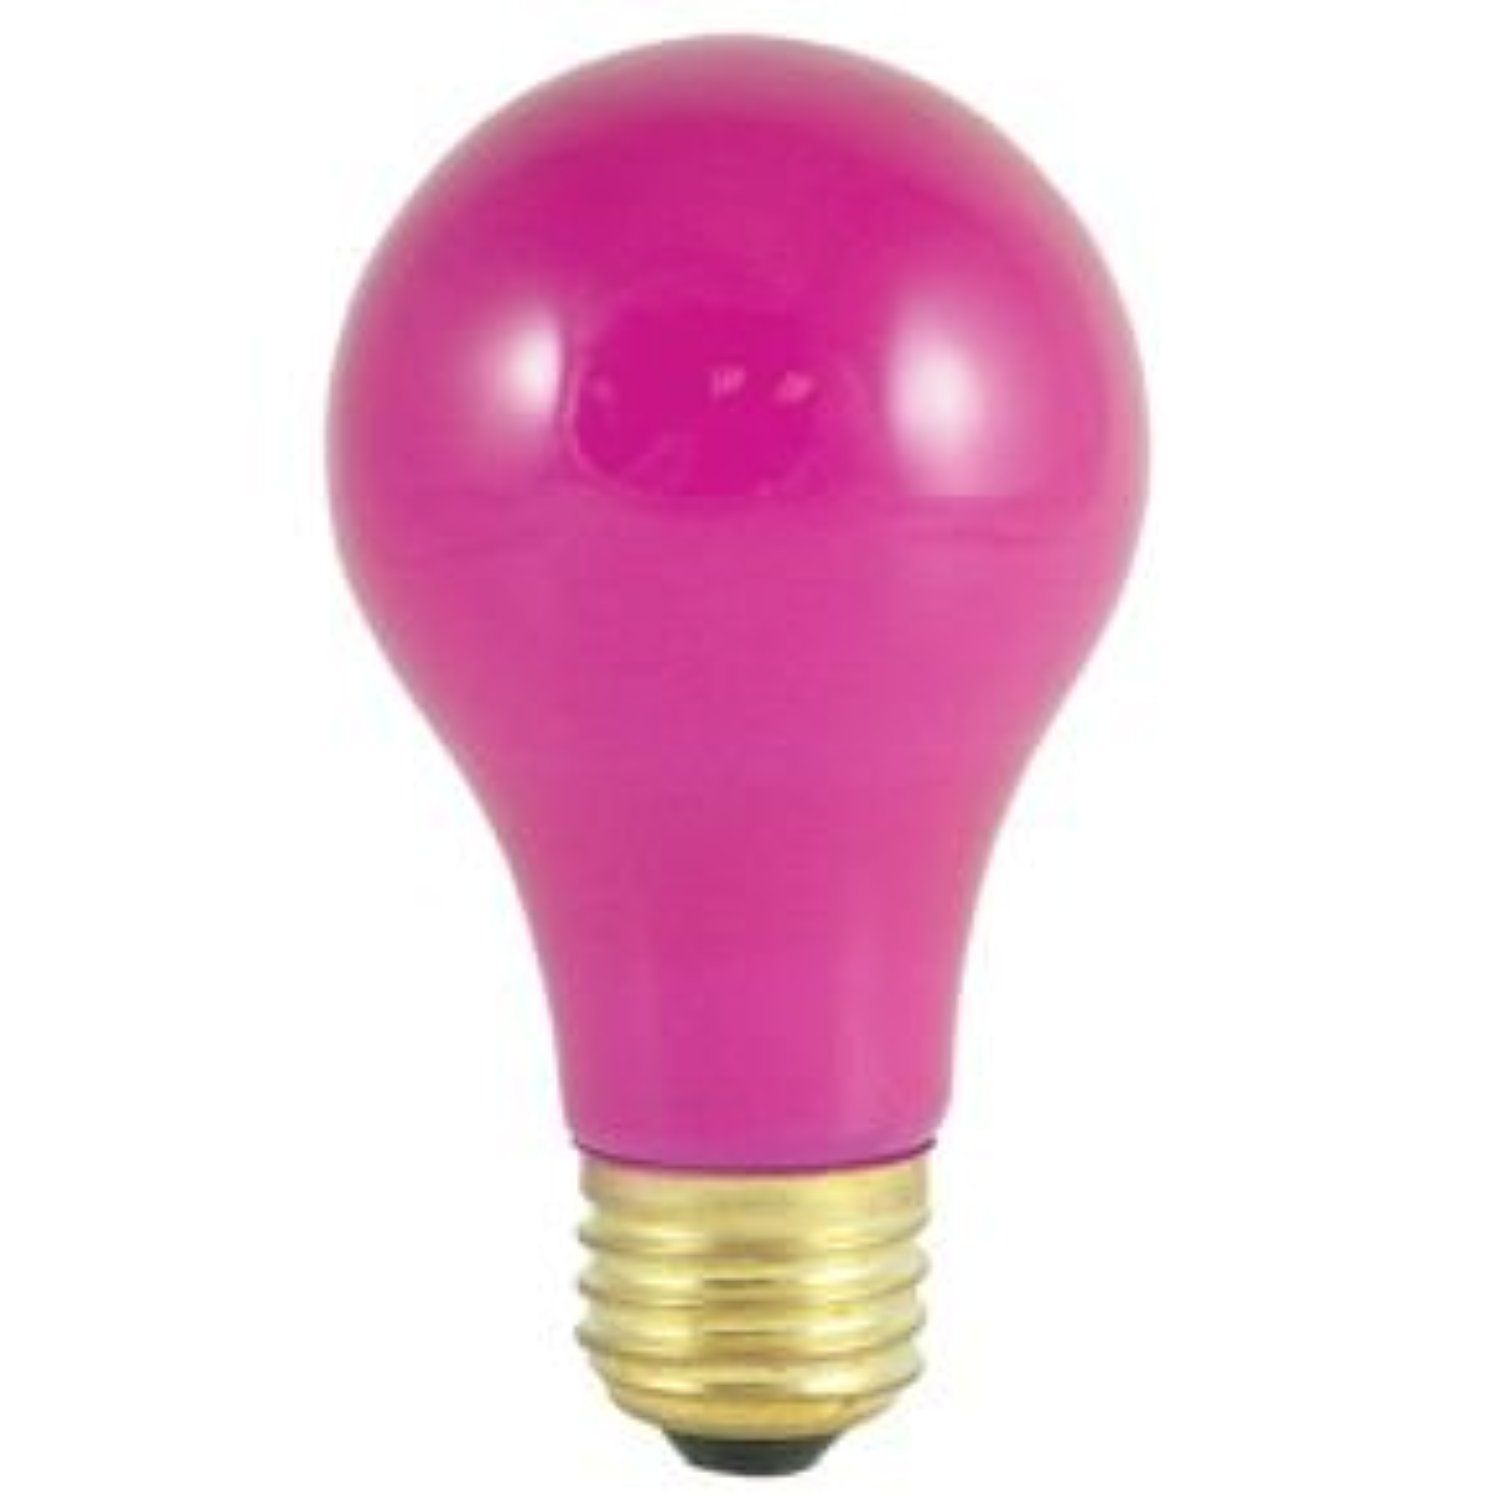 Bulbrite 40 Watt Pink Ceramic Bulb 4 Pack Awesome Products Selected By Anna Churchill Light Bulb Bulbrite Colored Light Bulbs